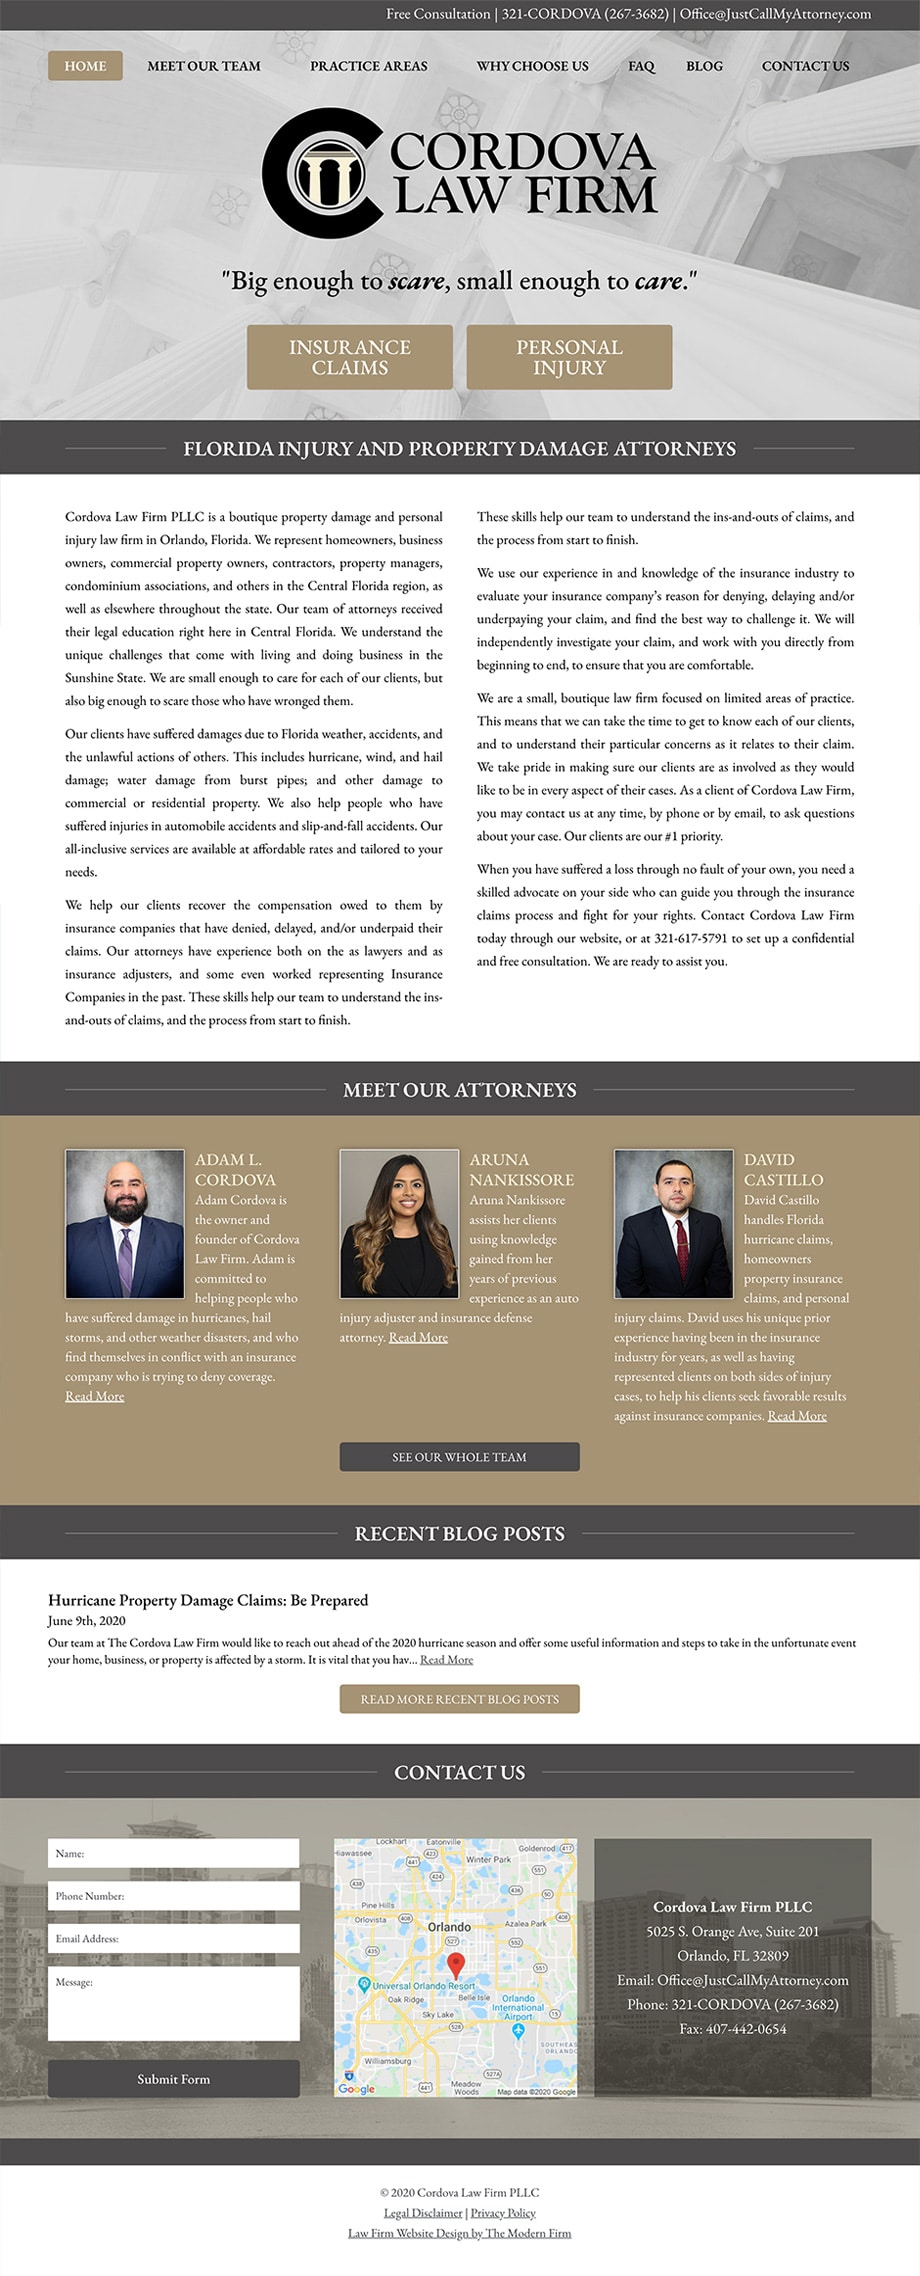 Law Firm Website Design for Cordova Law Firm PLLC